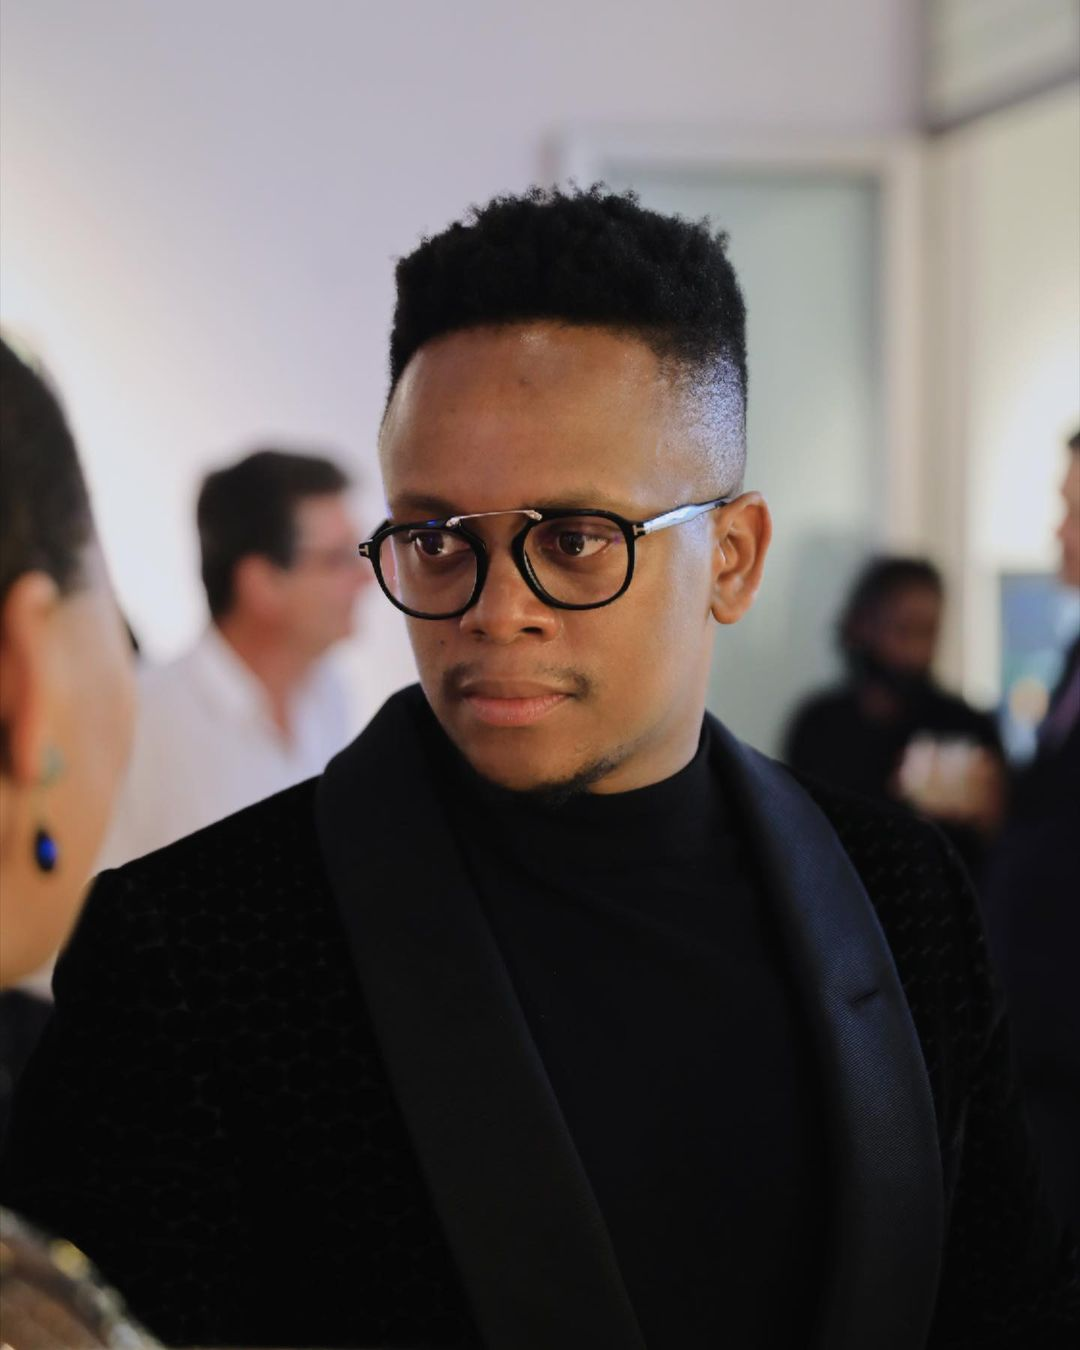 Dinner At Somizi's Producer Legend Finally Speaks On Theft Allegations